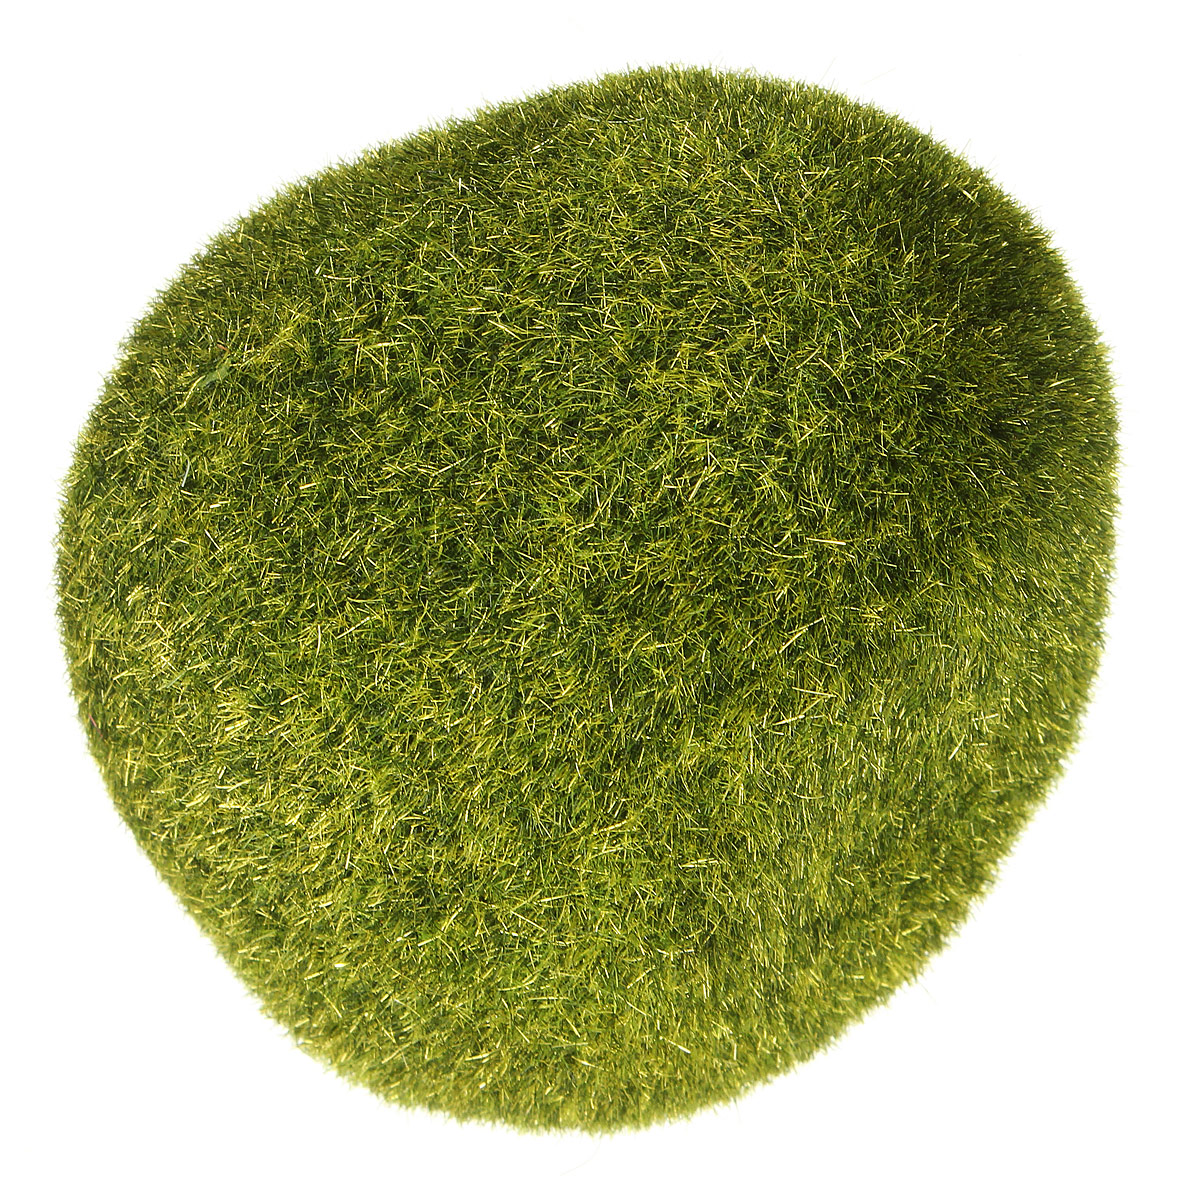 DIY Stunning Moss Green Artificial Grass Decorations Home Micro Landscape